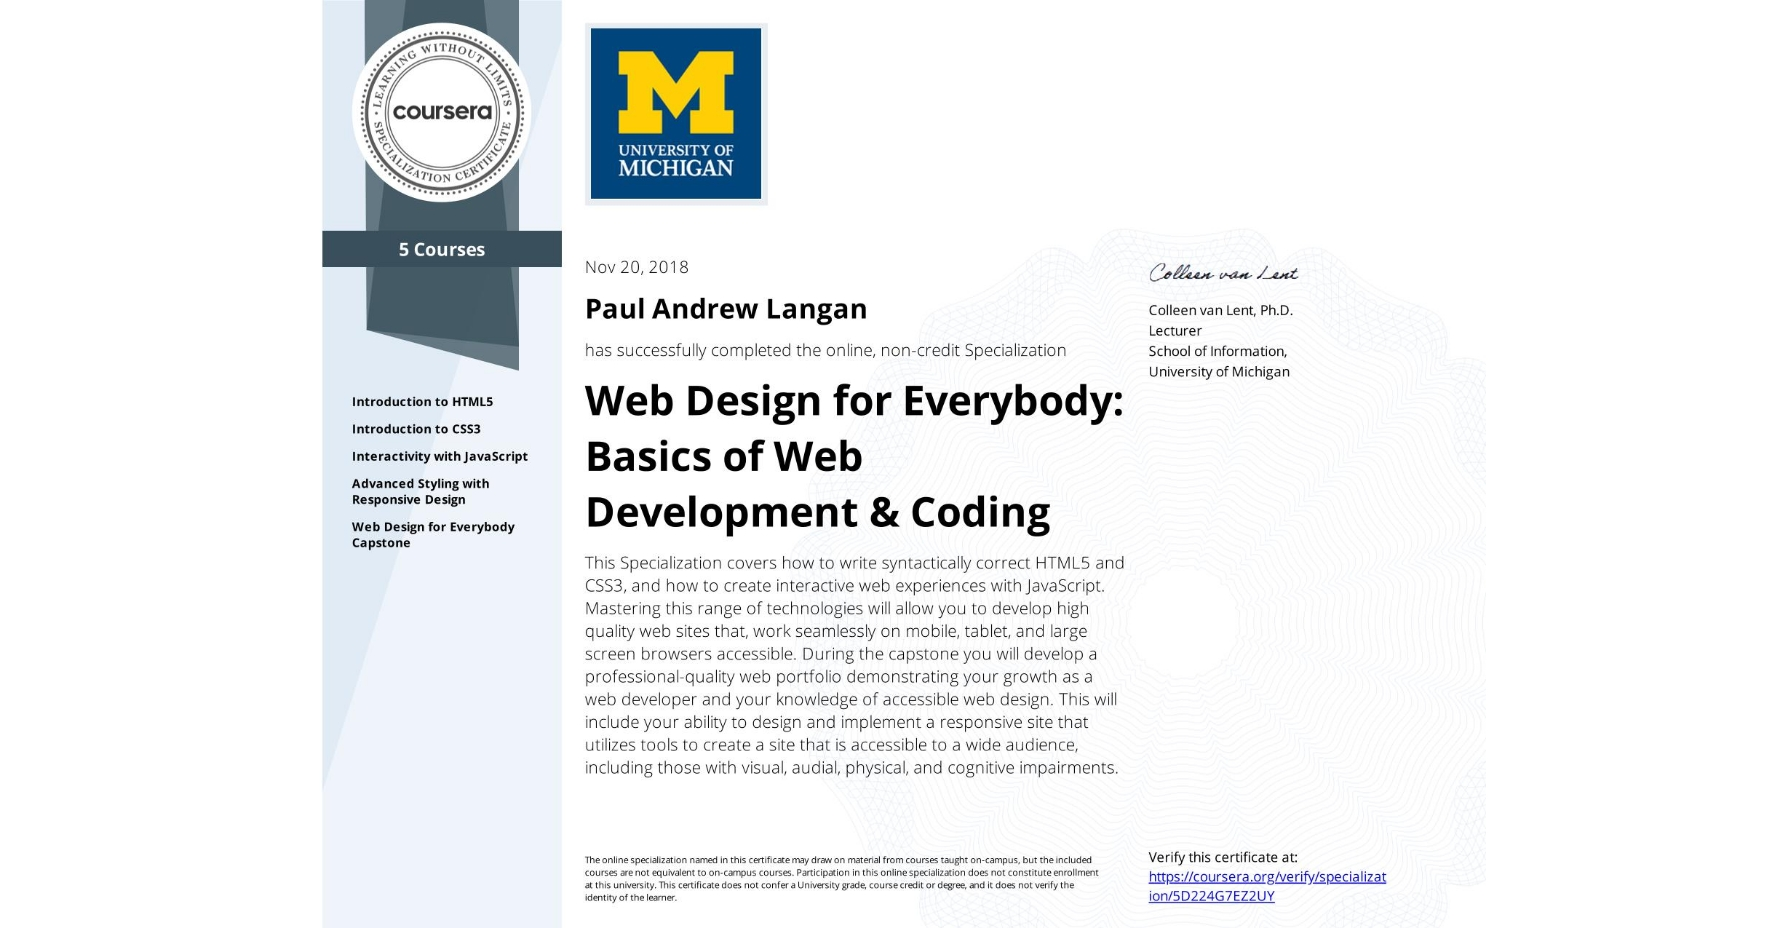 View certificate for Paul Andrew Langan, Web Design for Everybody: Basics of Web Development & Coding, offered through Coursera. This Specialization covers how to write syntactically correct HTML5 and CSS3, and how to create interactive web experiences with JavaScript. Mastering this range of technologies will allow you to develop high quality web sites that, work seamlessly on mobile, tablet, and large screen browsers accessible. During the capstone you will develop a professional-quality web portfolio demonstrating your growth as a web developer and your knowledge of accessible web design. This will include your ability to design and implement a responsive site that utilizes tools to create a site that is accessible to a wide audience, including those with visual, audial, physical, and cognitive impairments.